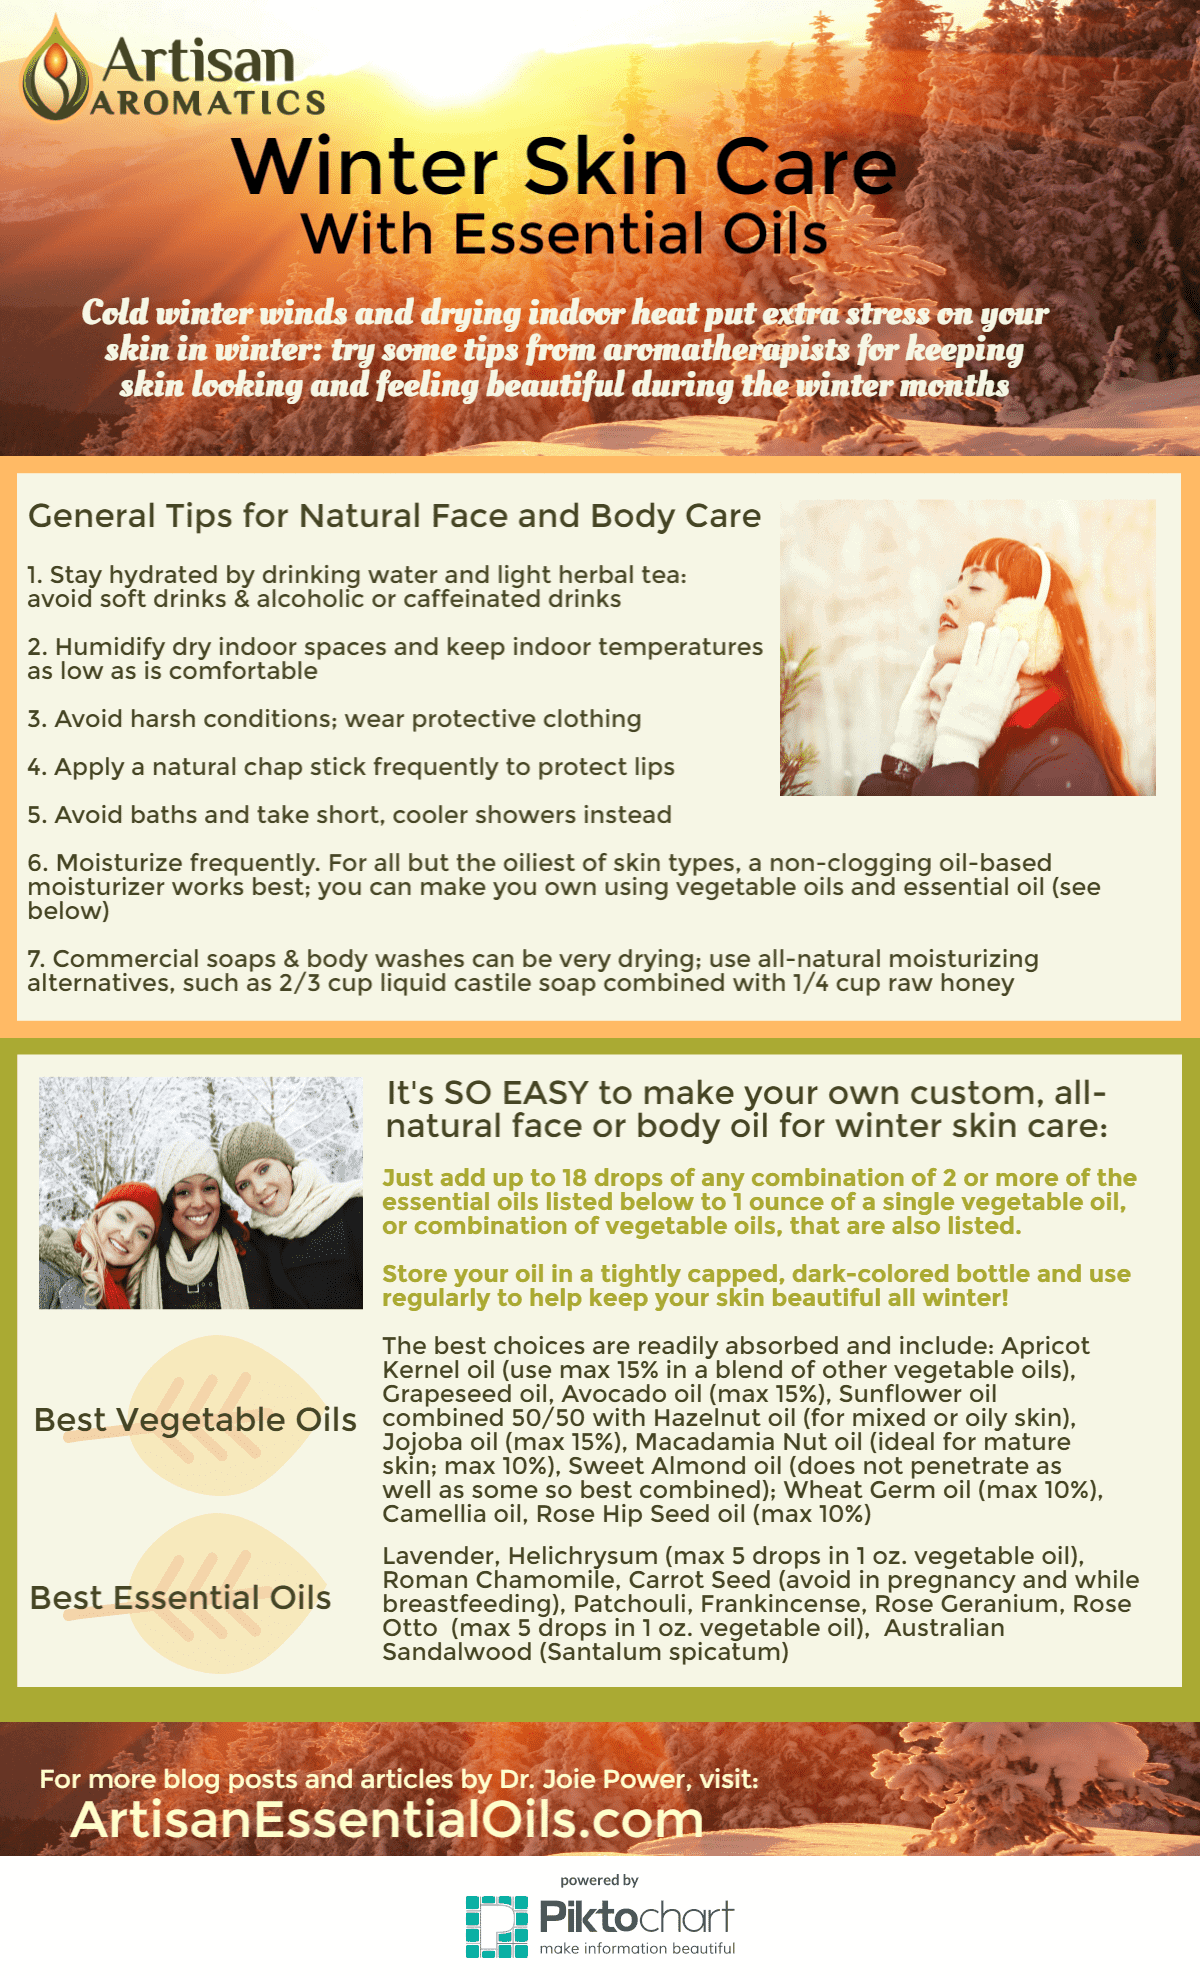 Artisan-Aromatics-Winter-Skin-Care-Infographic-Dr-Power